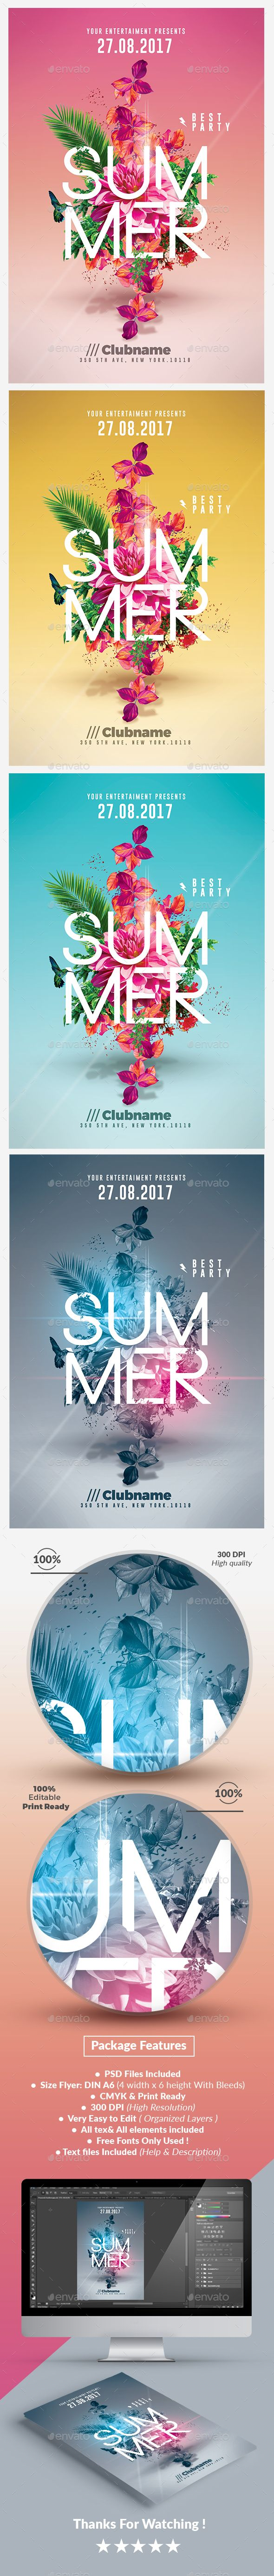 Poster design template psd - Summer Party Flyer Template Psd Download Here Https Graphicriver Net